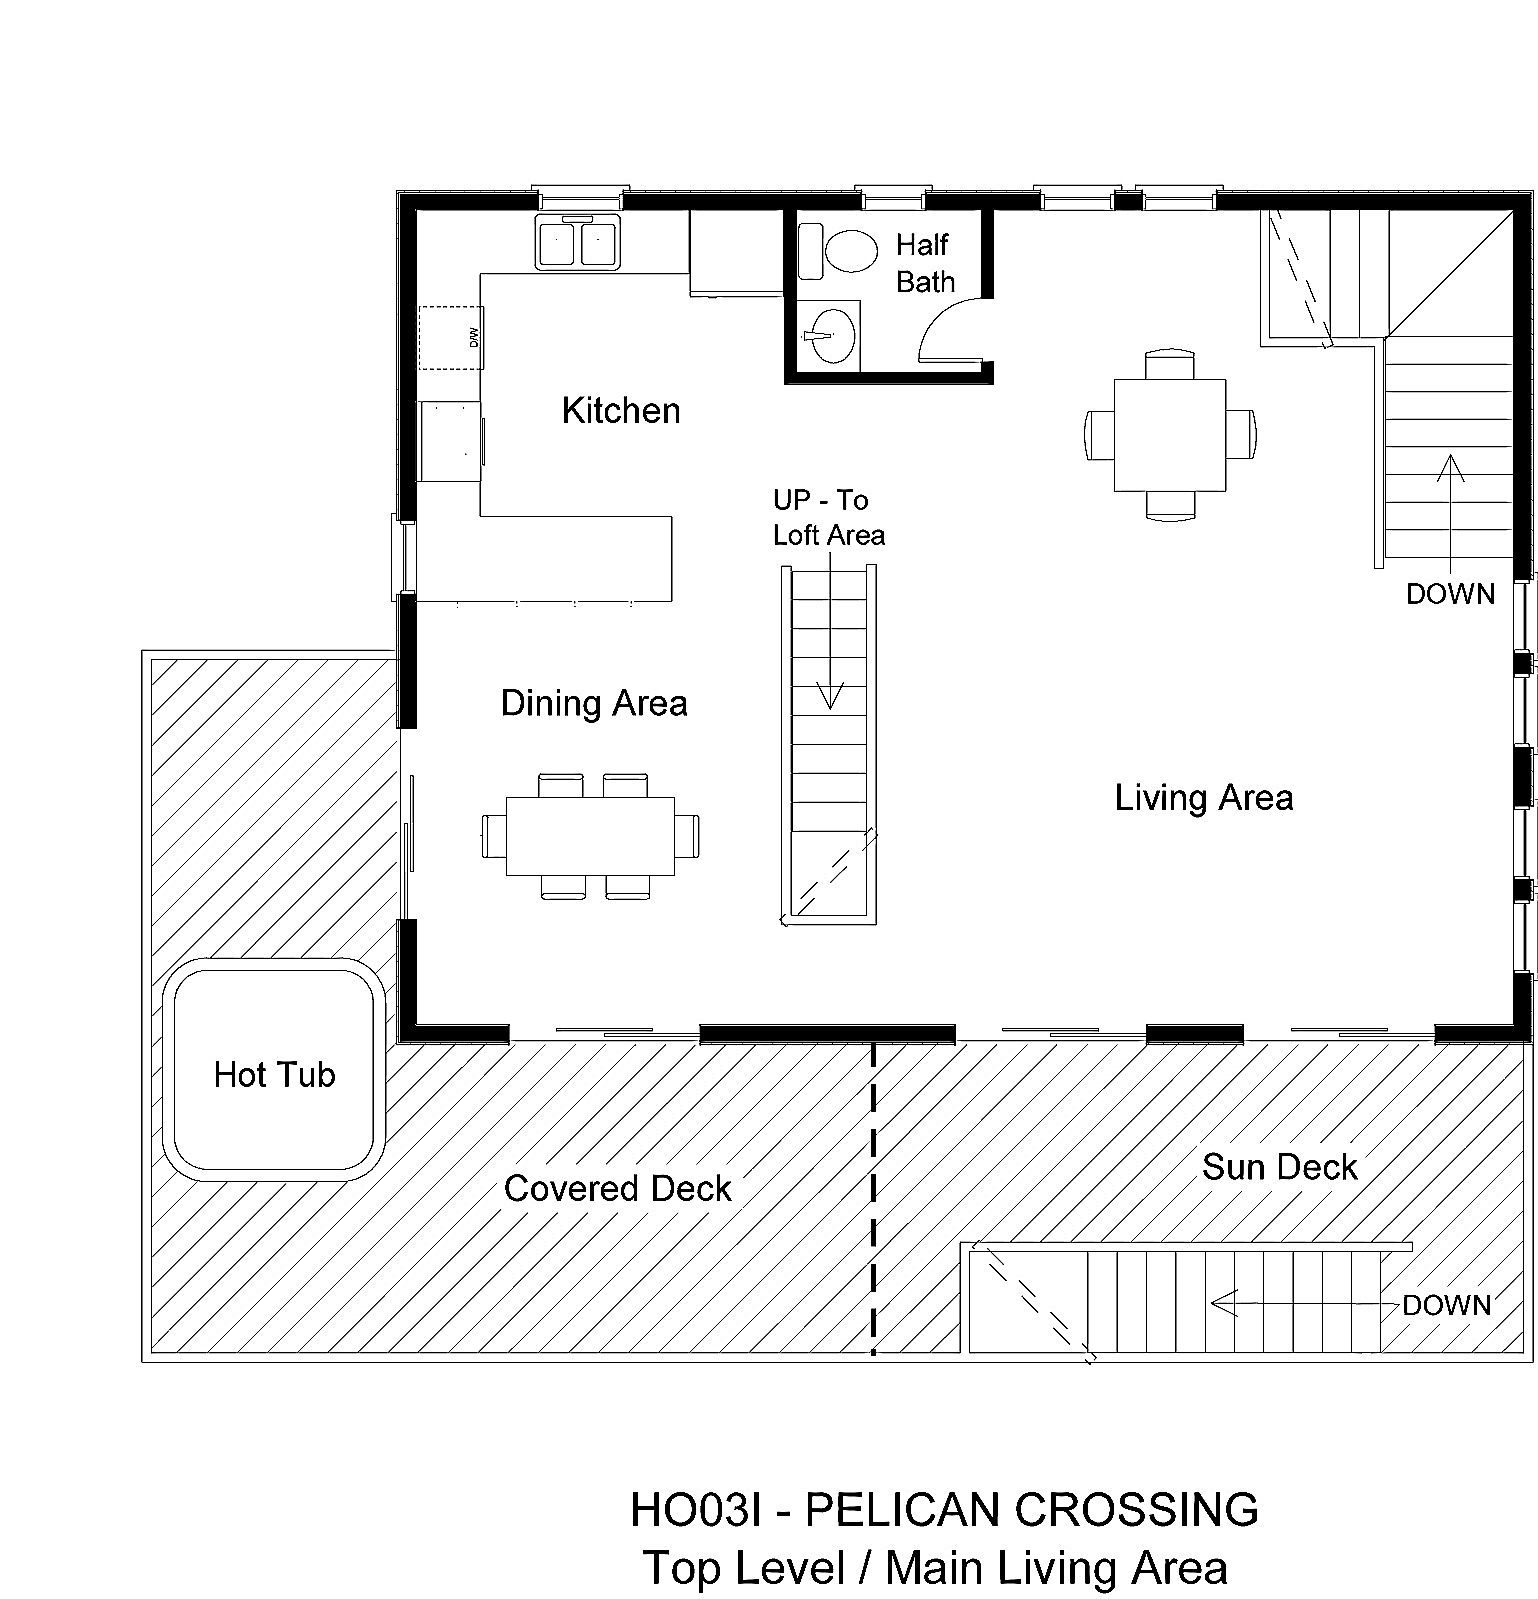 HO03I Pelican Crossing - Floorplan Level 2